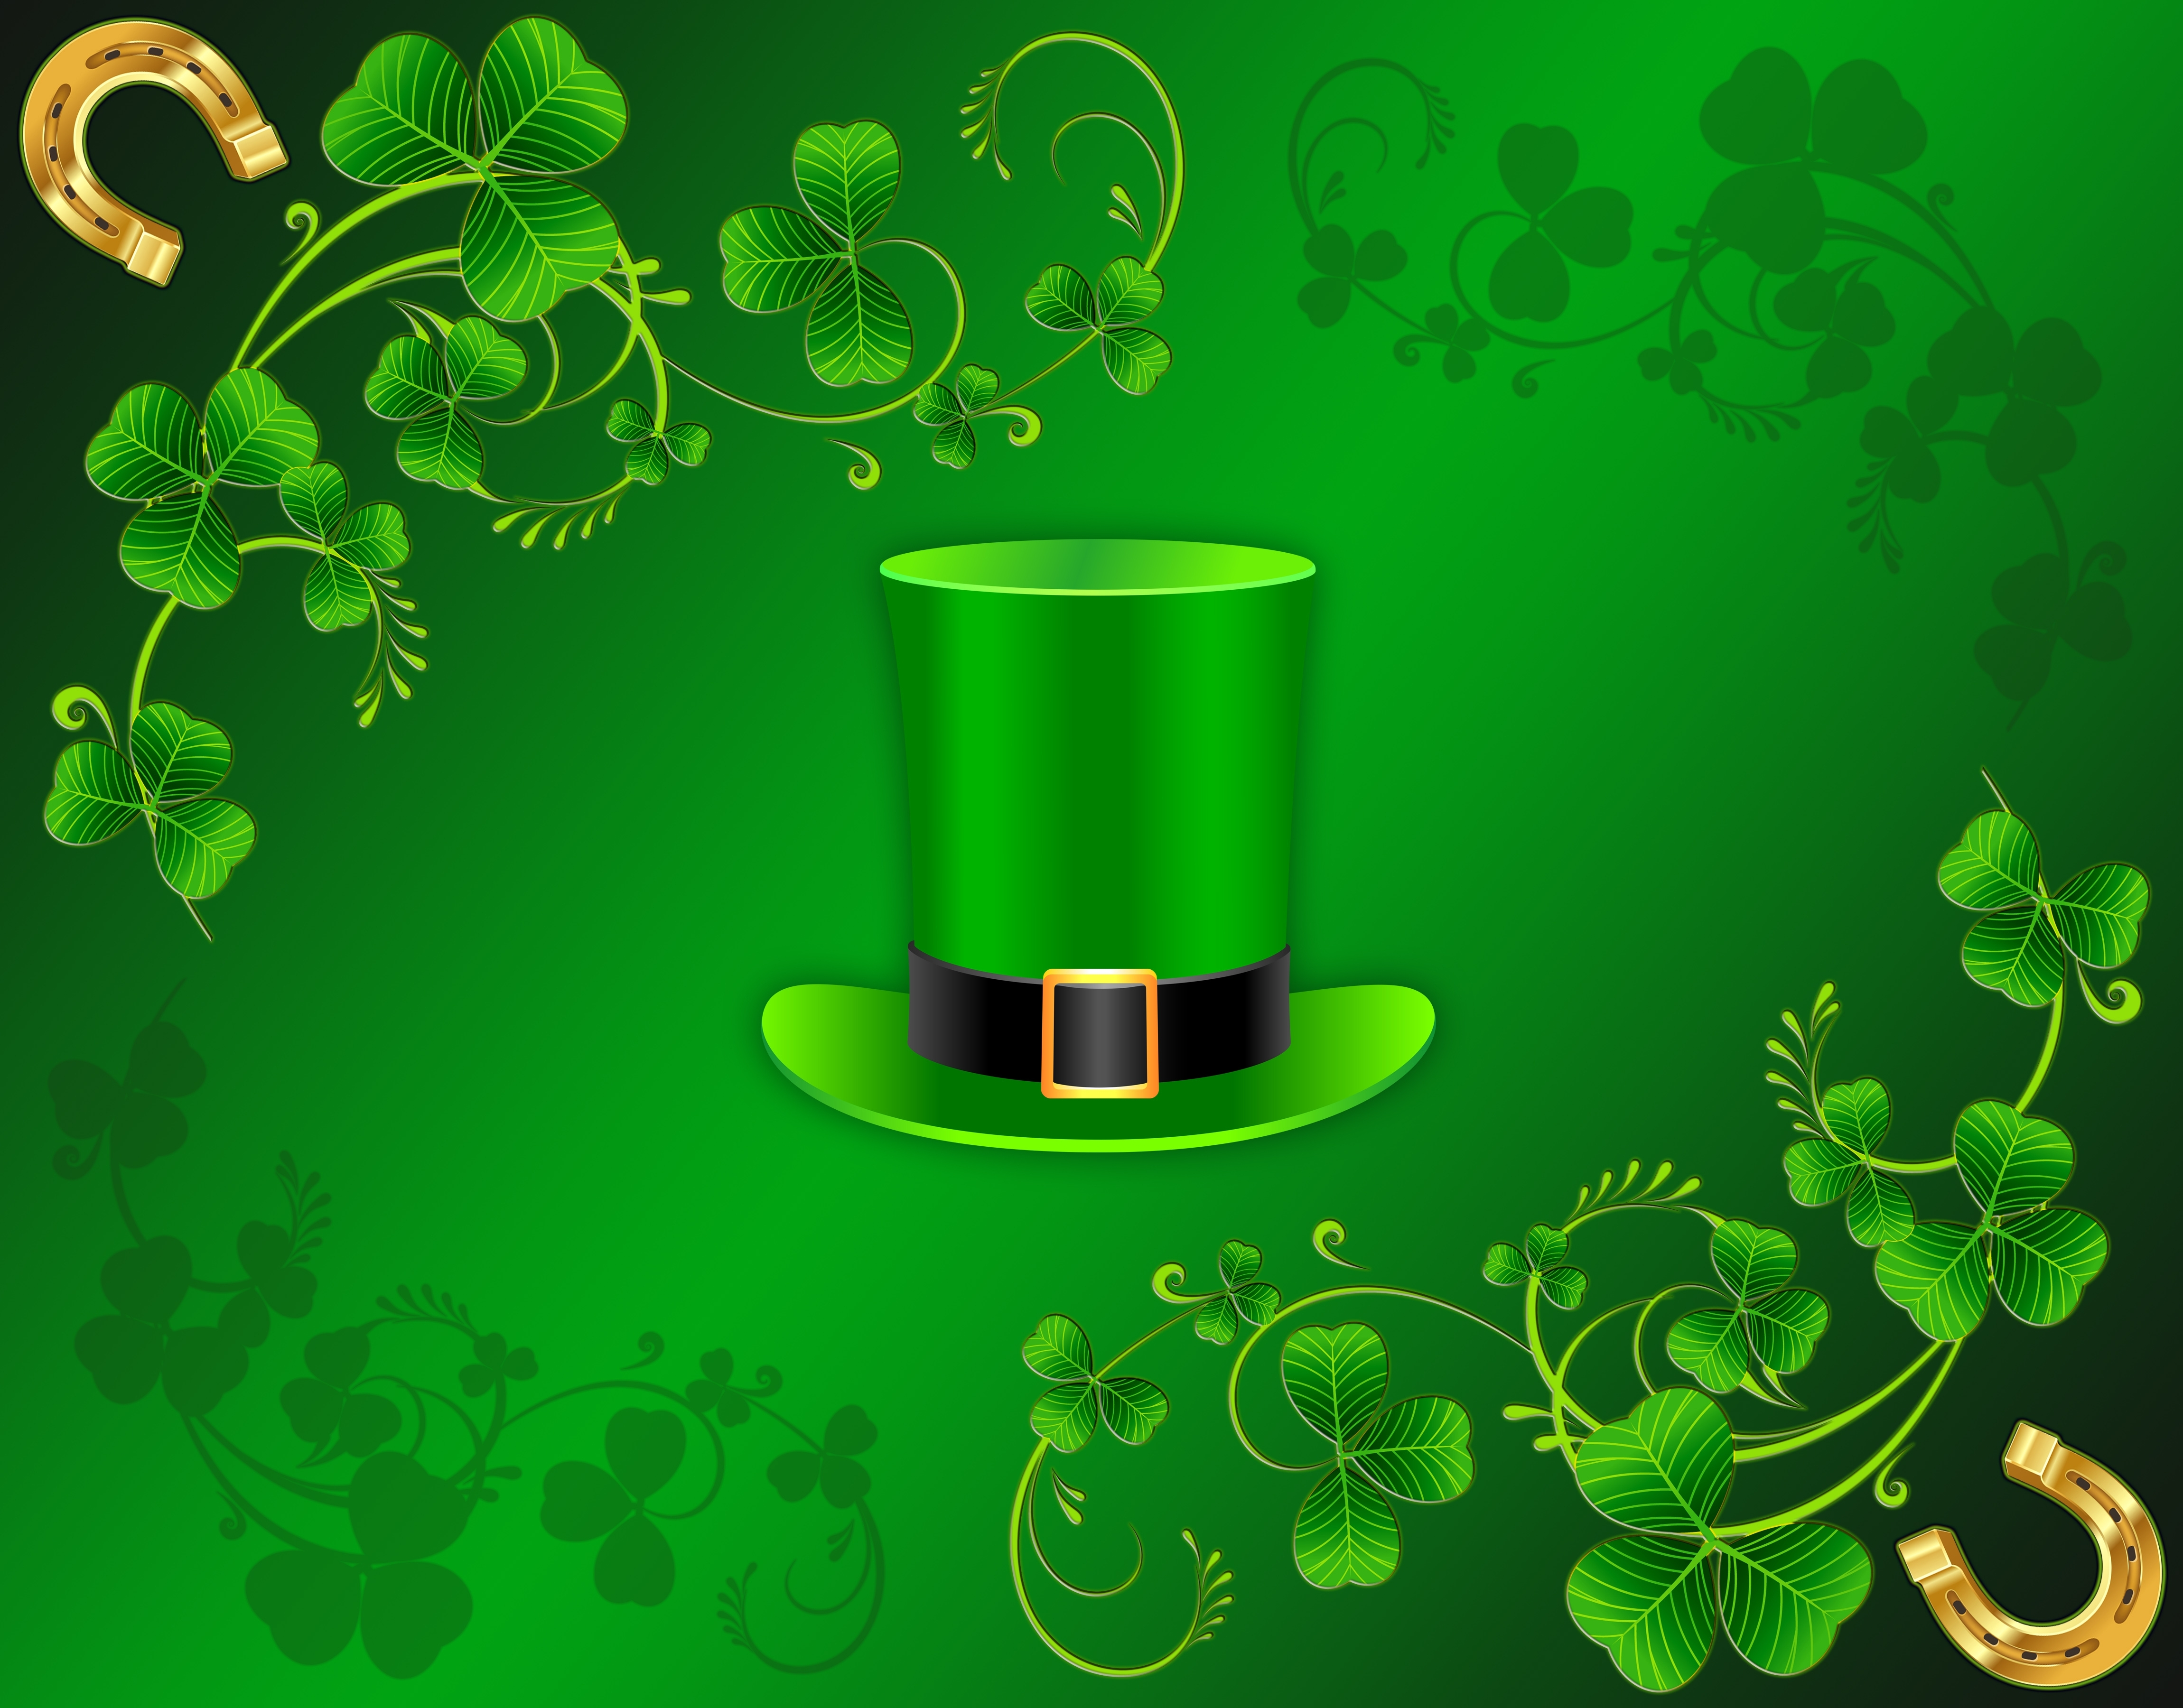 st. patrick's day 4k ultra hd wallpaper and background image